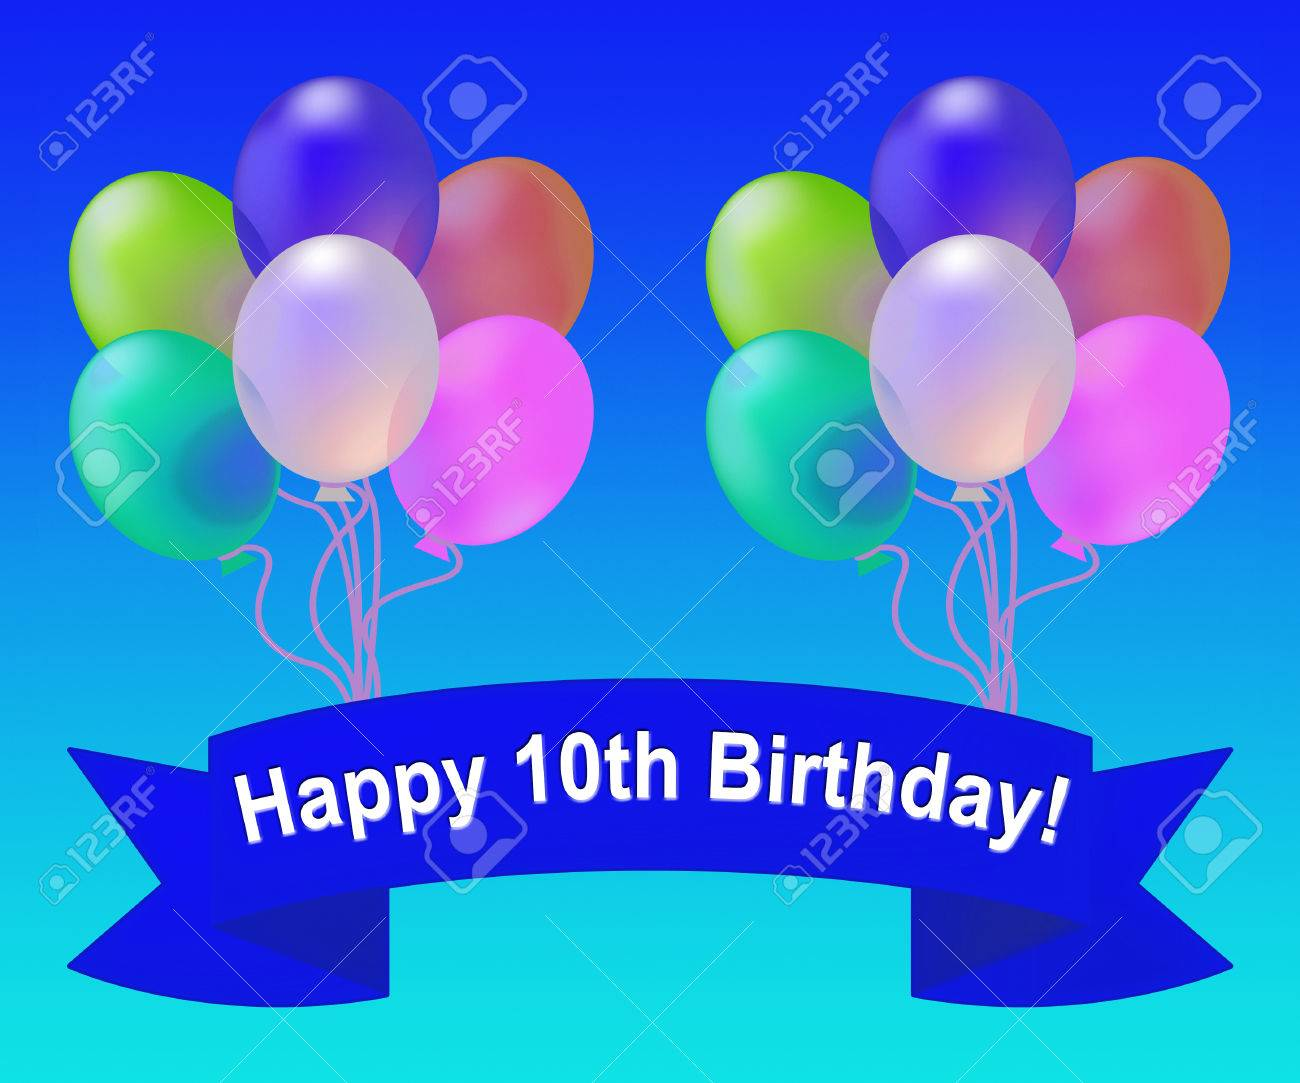 Happy Tenth Birthday Balloons Means 10th Party Celebration 3d Illustration Stock